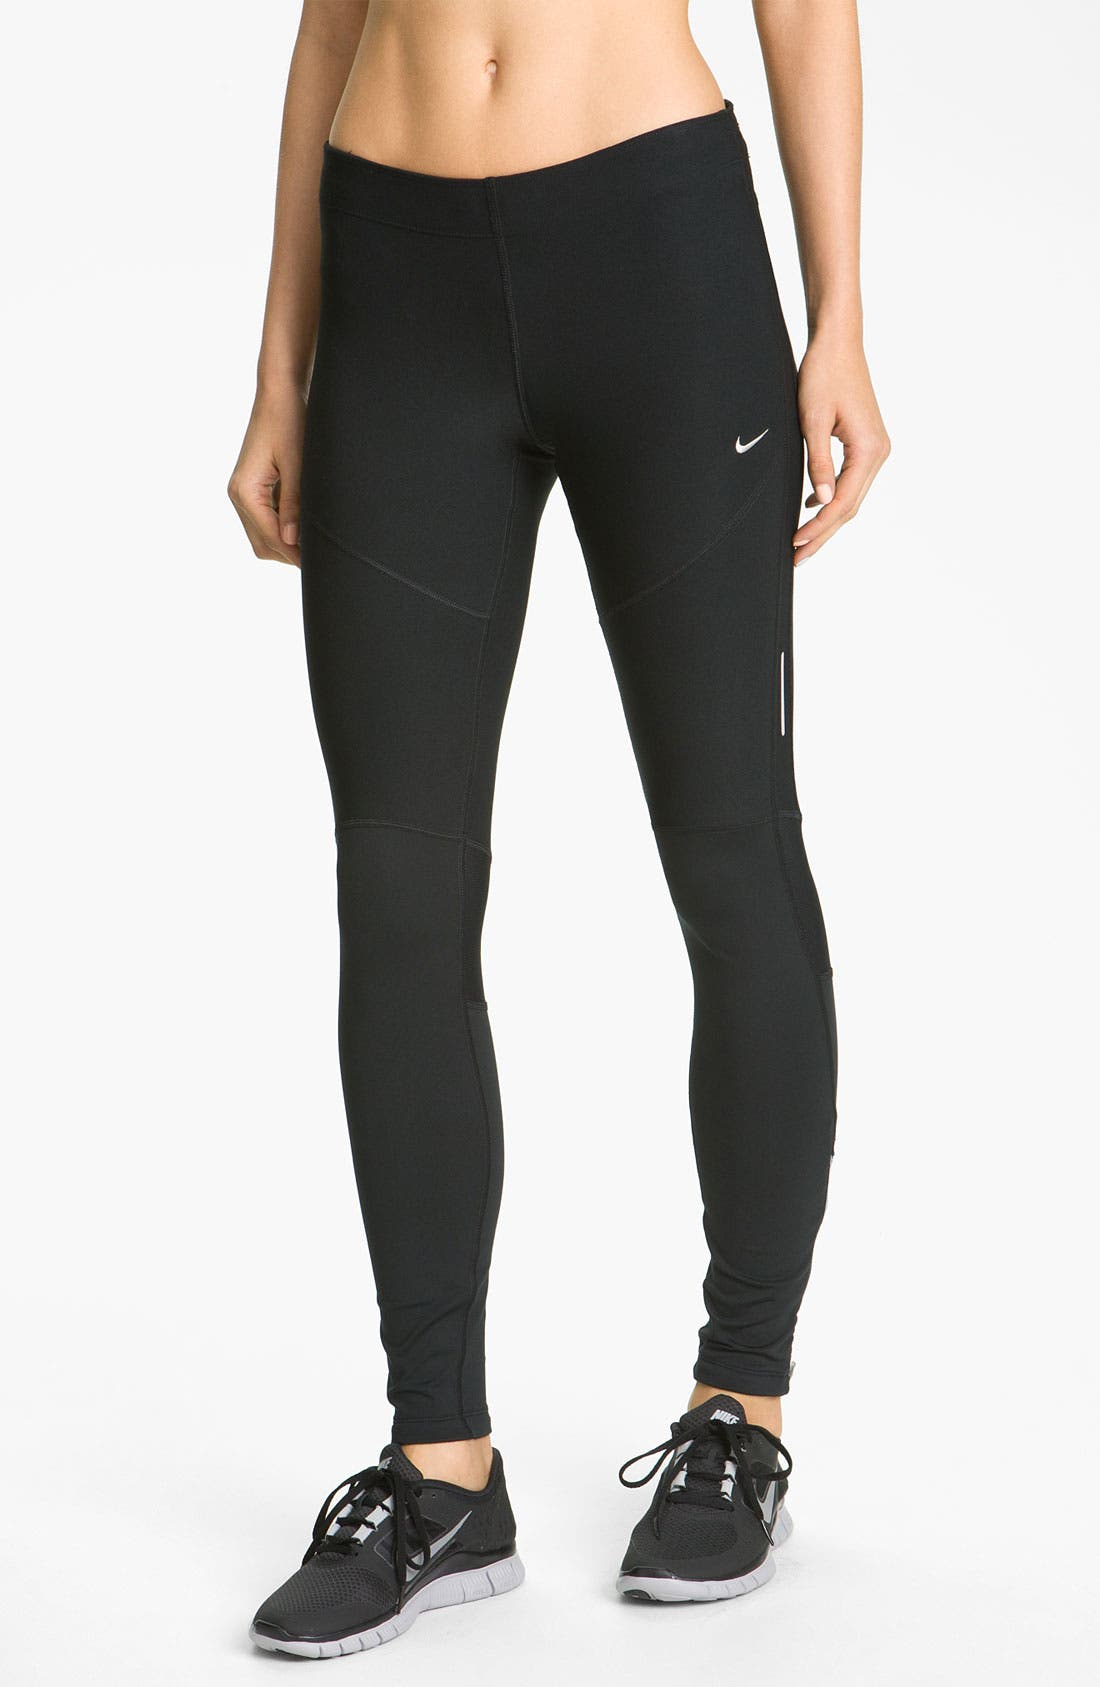 Alternate Image 1 Selected - Nike 'Tech' Running Tights